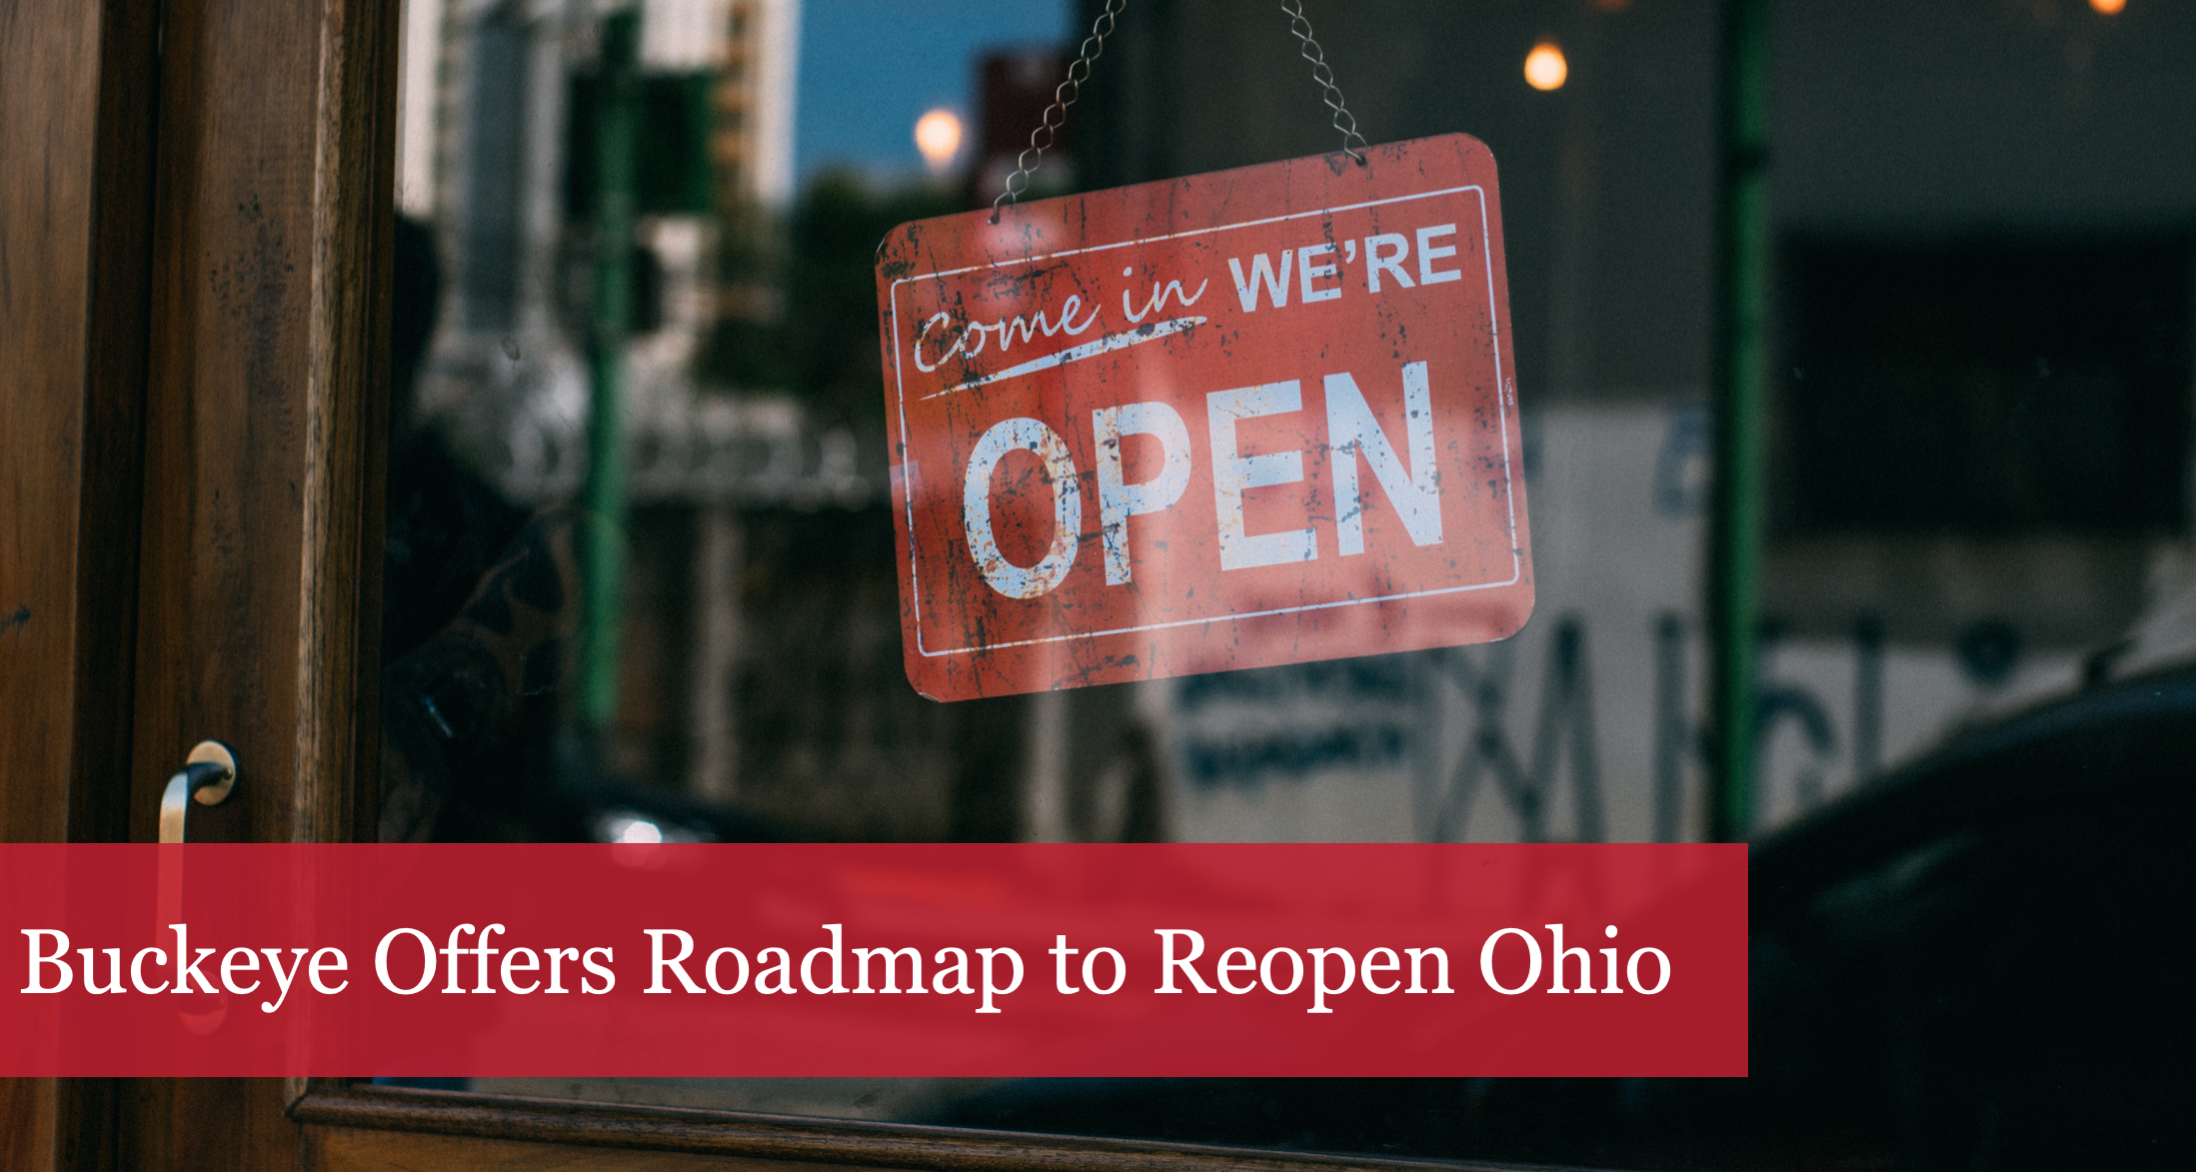 The Buckeye Institute Offers a Roadmap to Reopen Ohio Safely